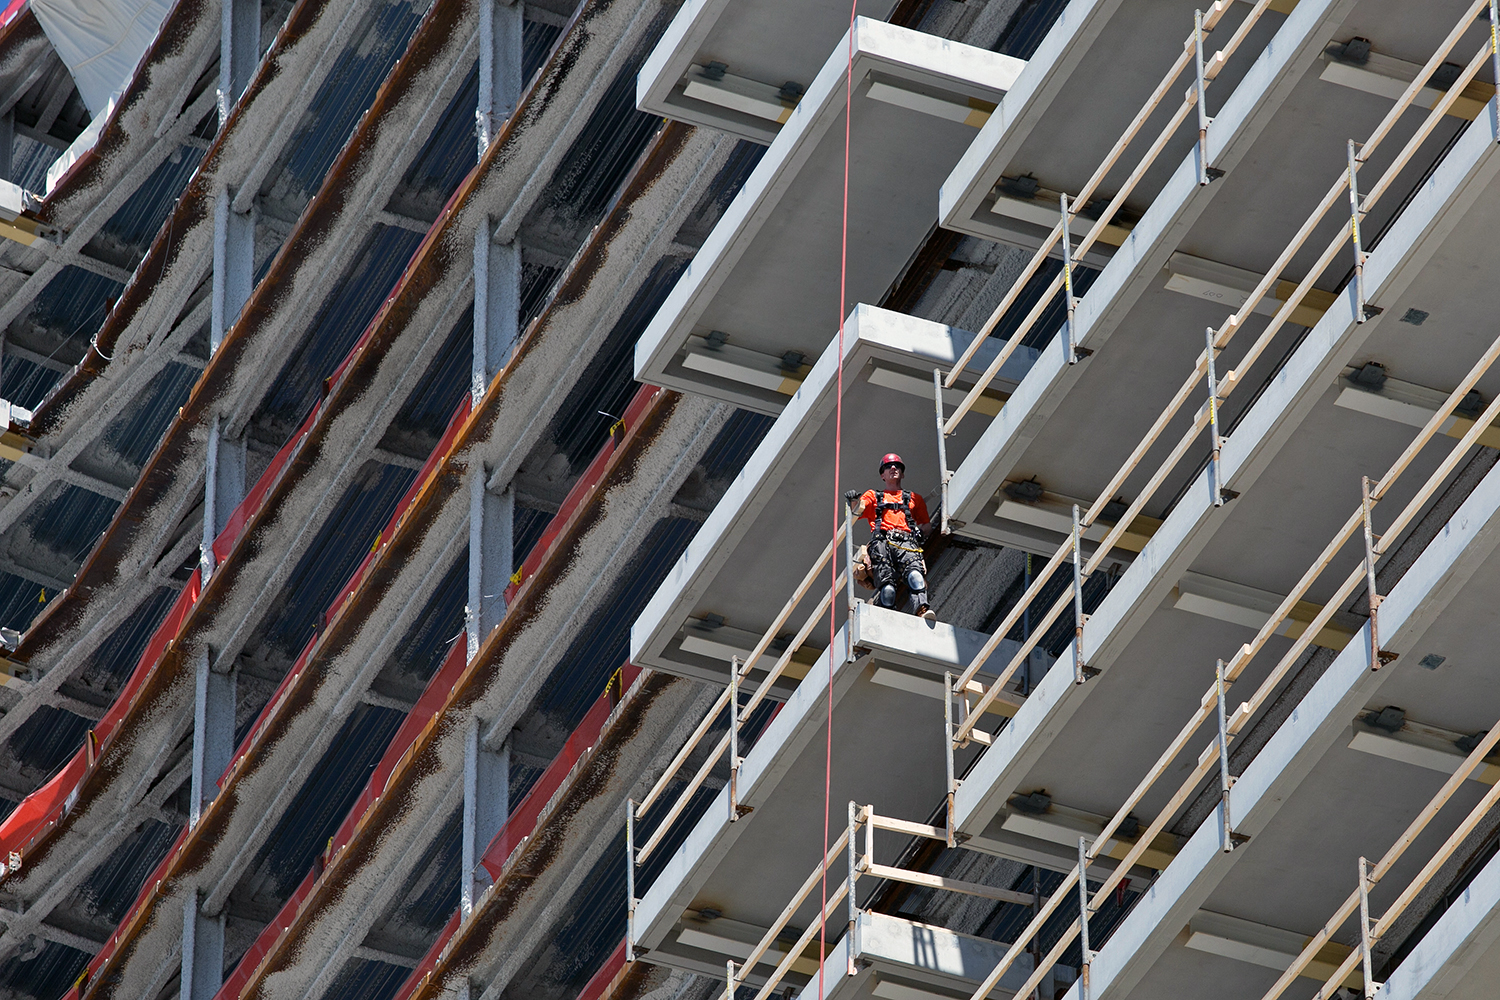 Construction workers are pictured at a development on the South Boston waterfront, June 6, 2016. (Photo by Lauren Owens Lambert/GroundTruth)